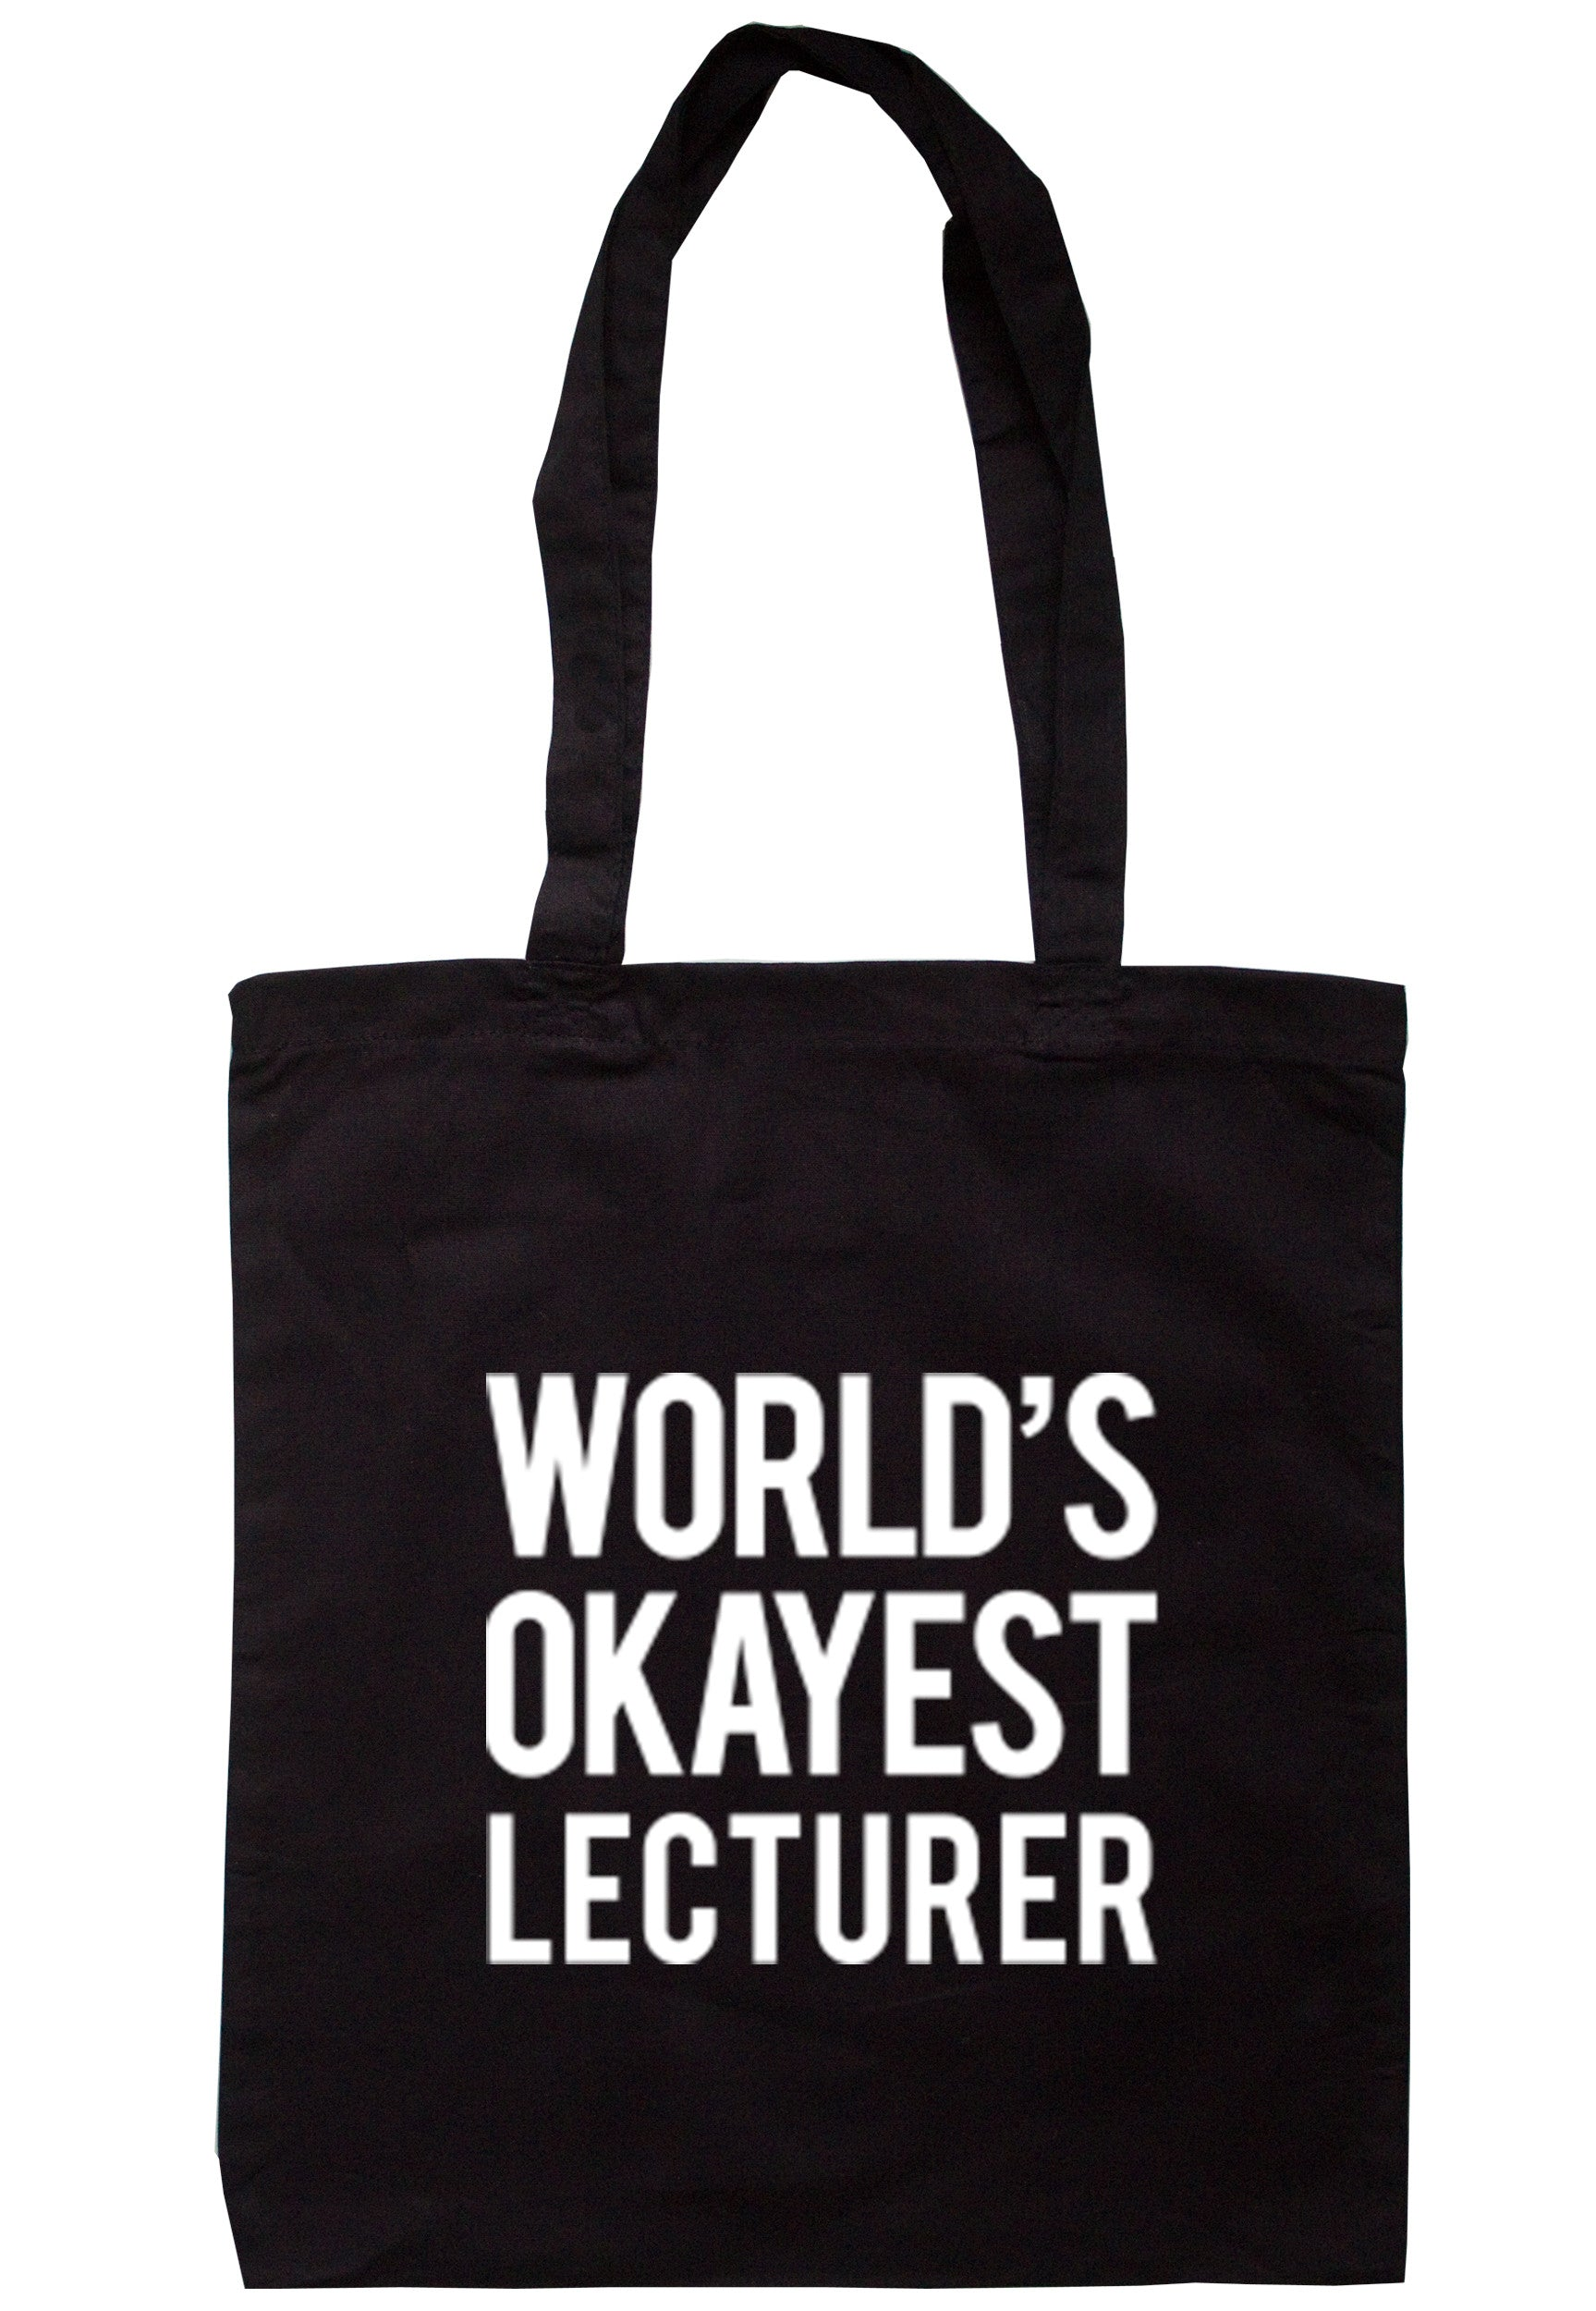 Worlds Okayest Lecturer Tote Bag TB0294 - Illustrated Identity Ltd.